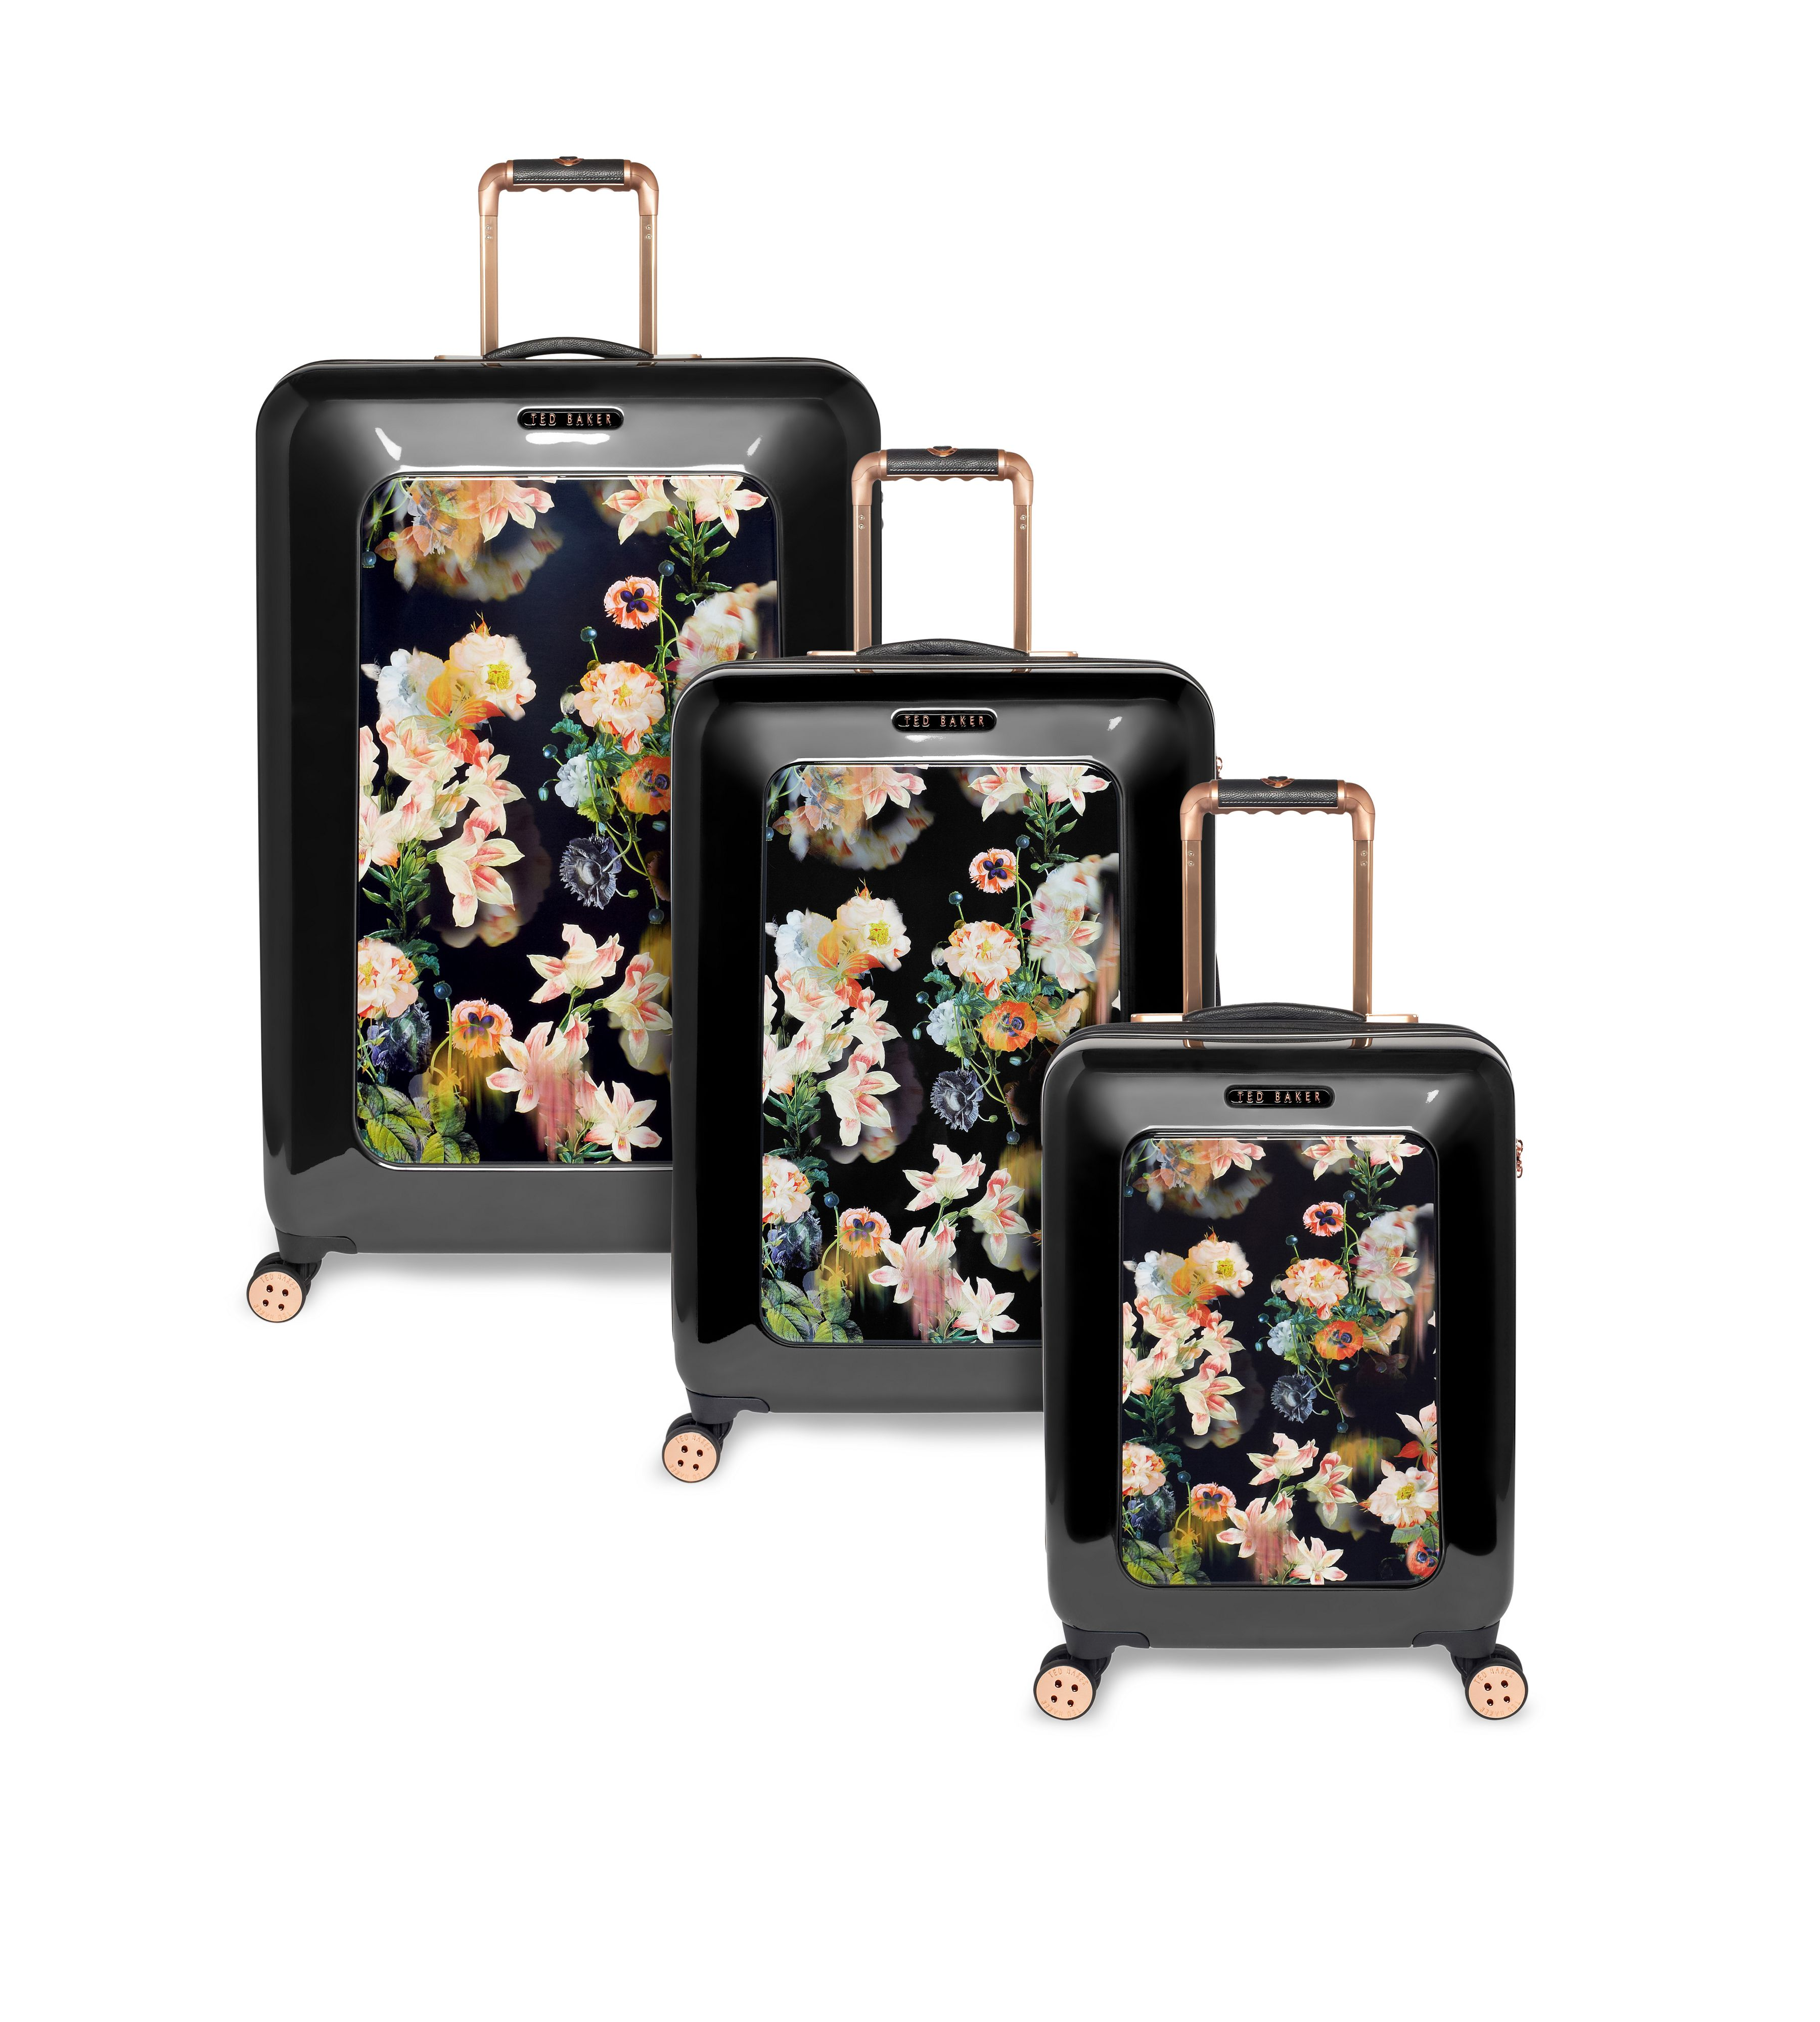 Opulent Black luggage range